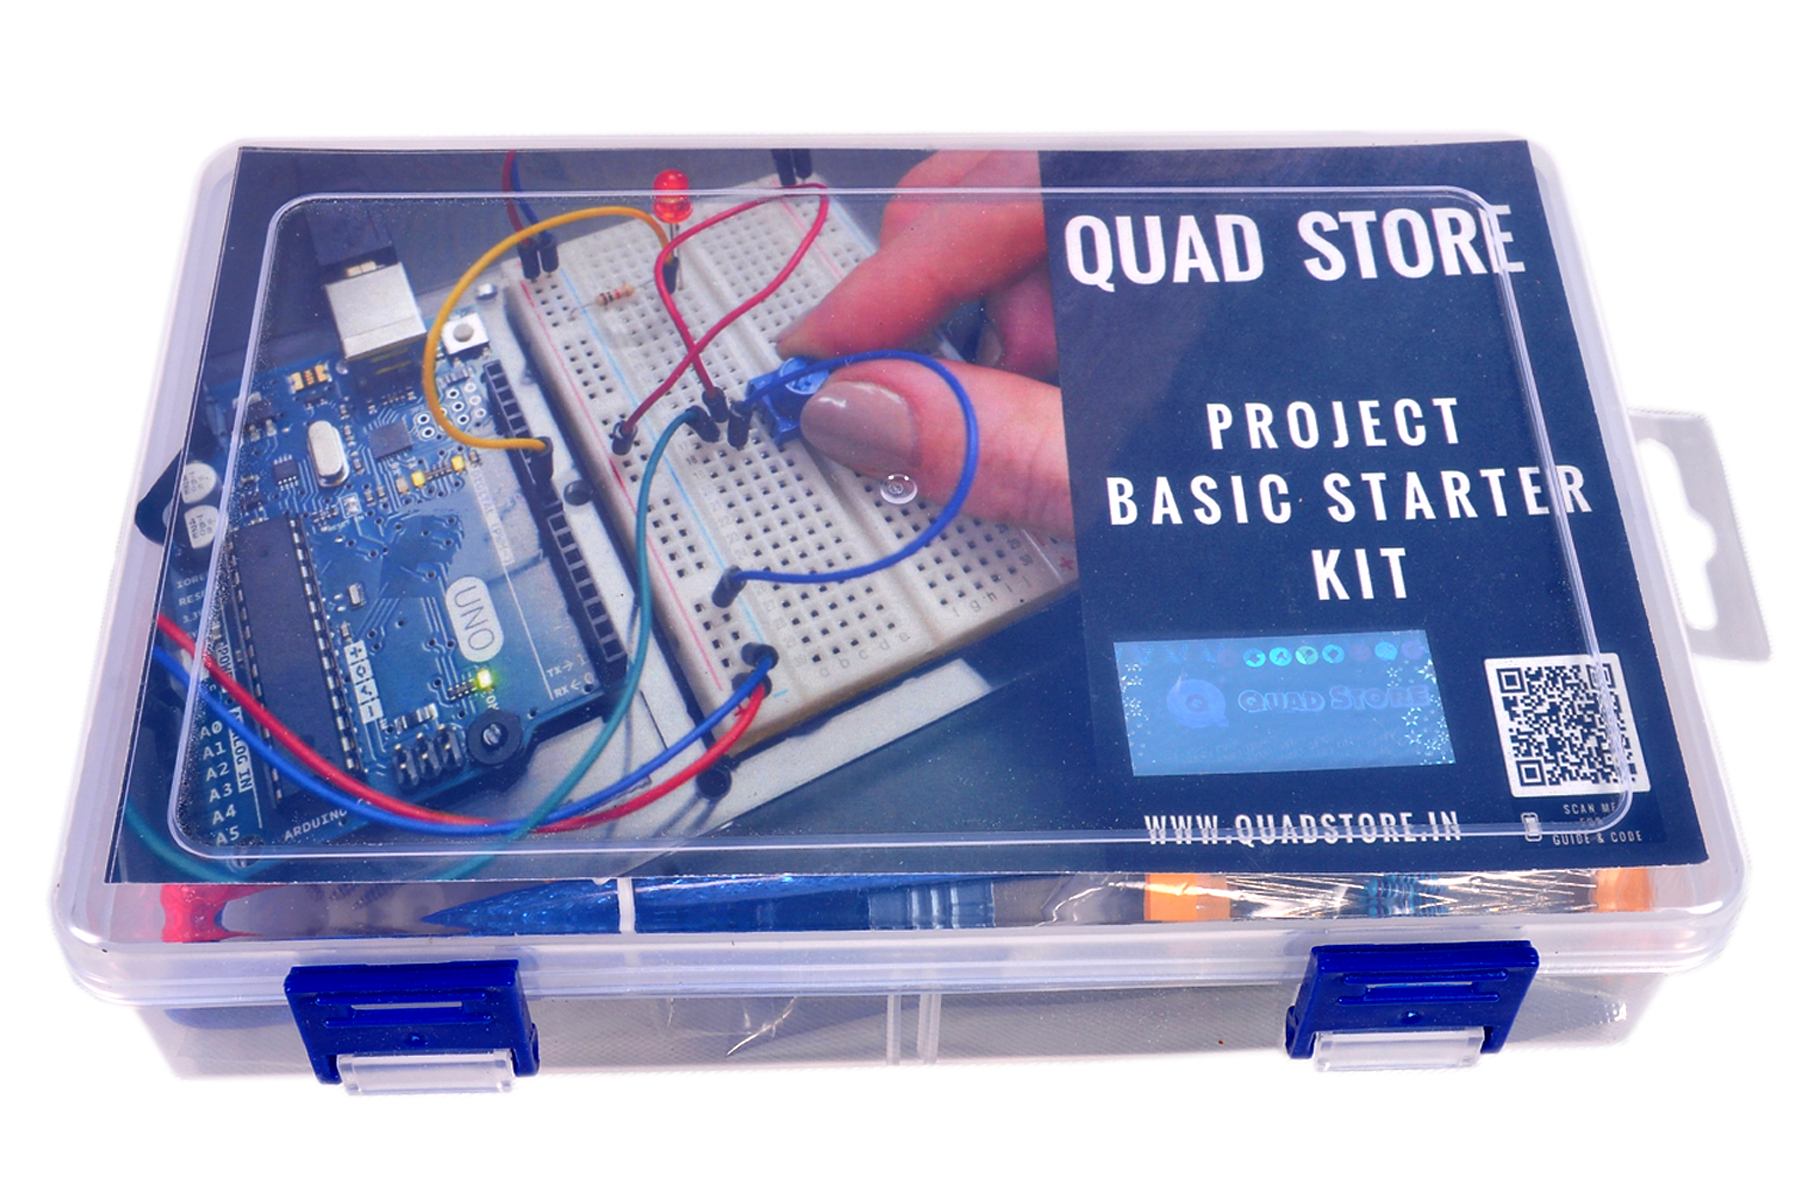 Quad Storetm Project Basic Starter Kit With Uno R3 For Arduino Electronic Circuit Kits India Previous